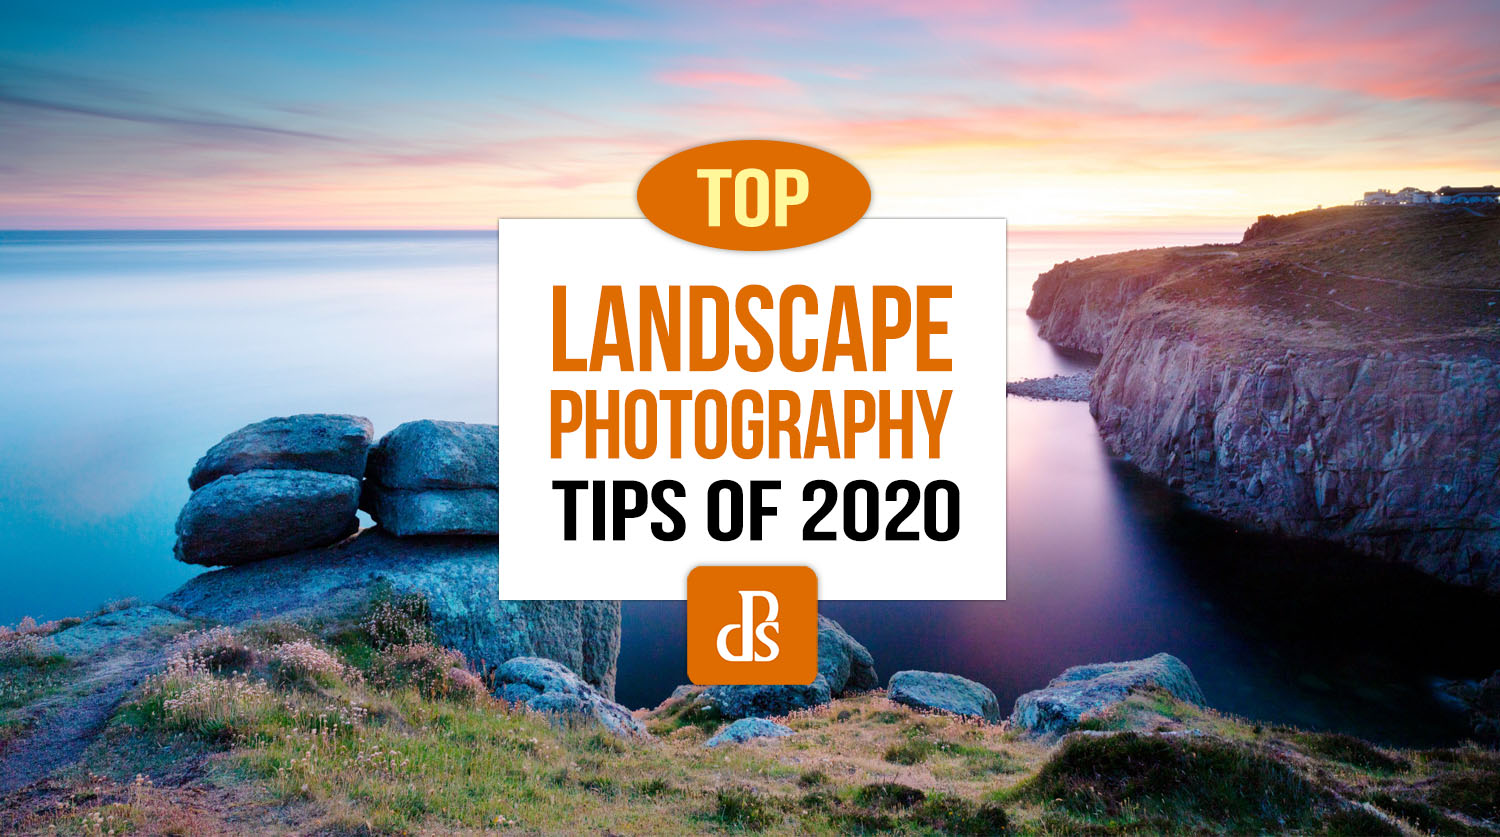 https://i2.wp.com/digital-photography-school.com/wp-content/uploads/2020/12/dps-top-landscape-photography-tips-2020.jpg?resize=1500%2C837&ssl=1